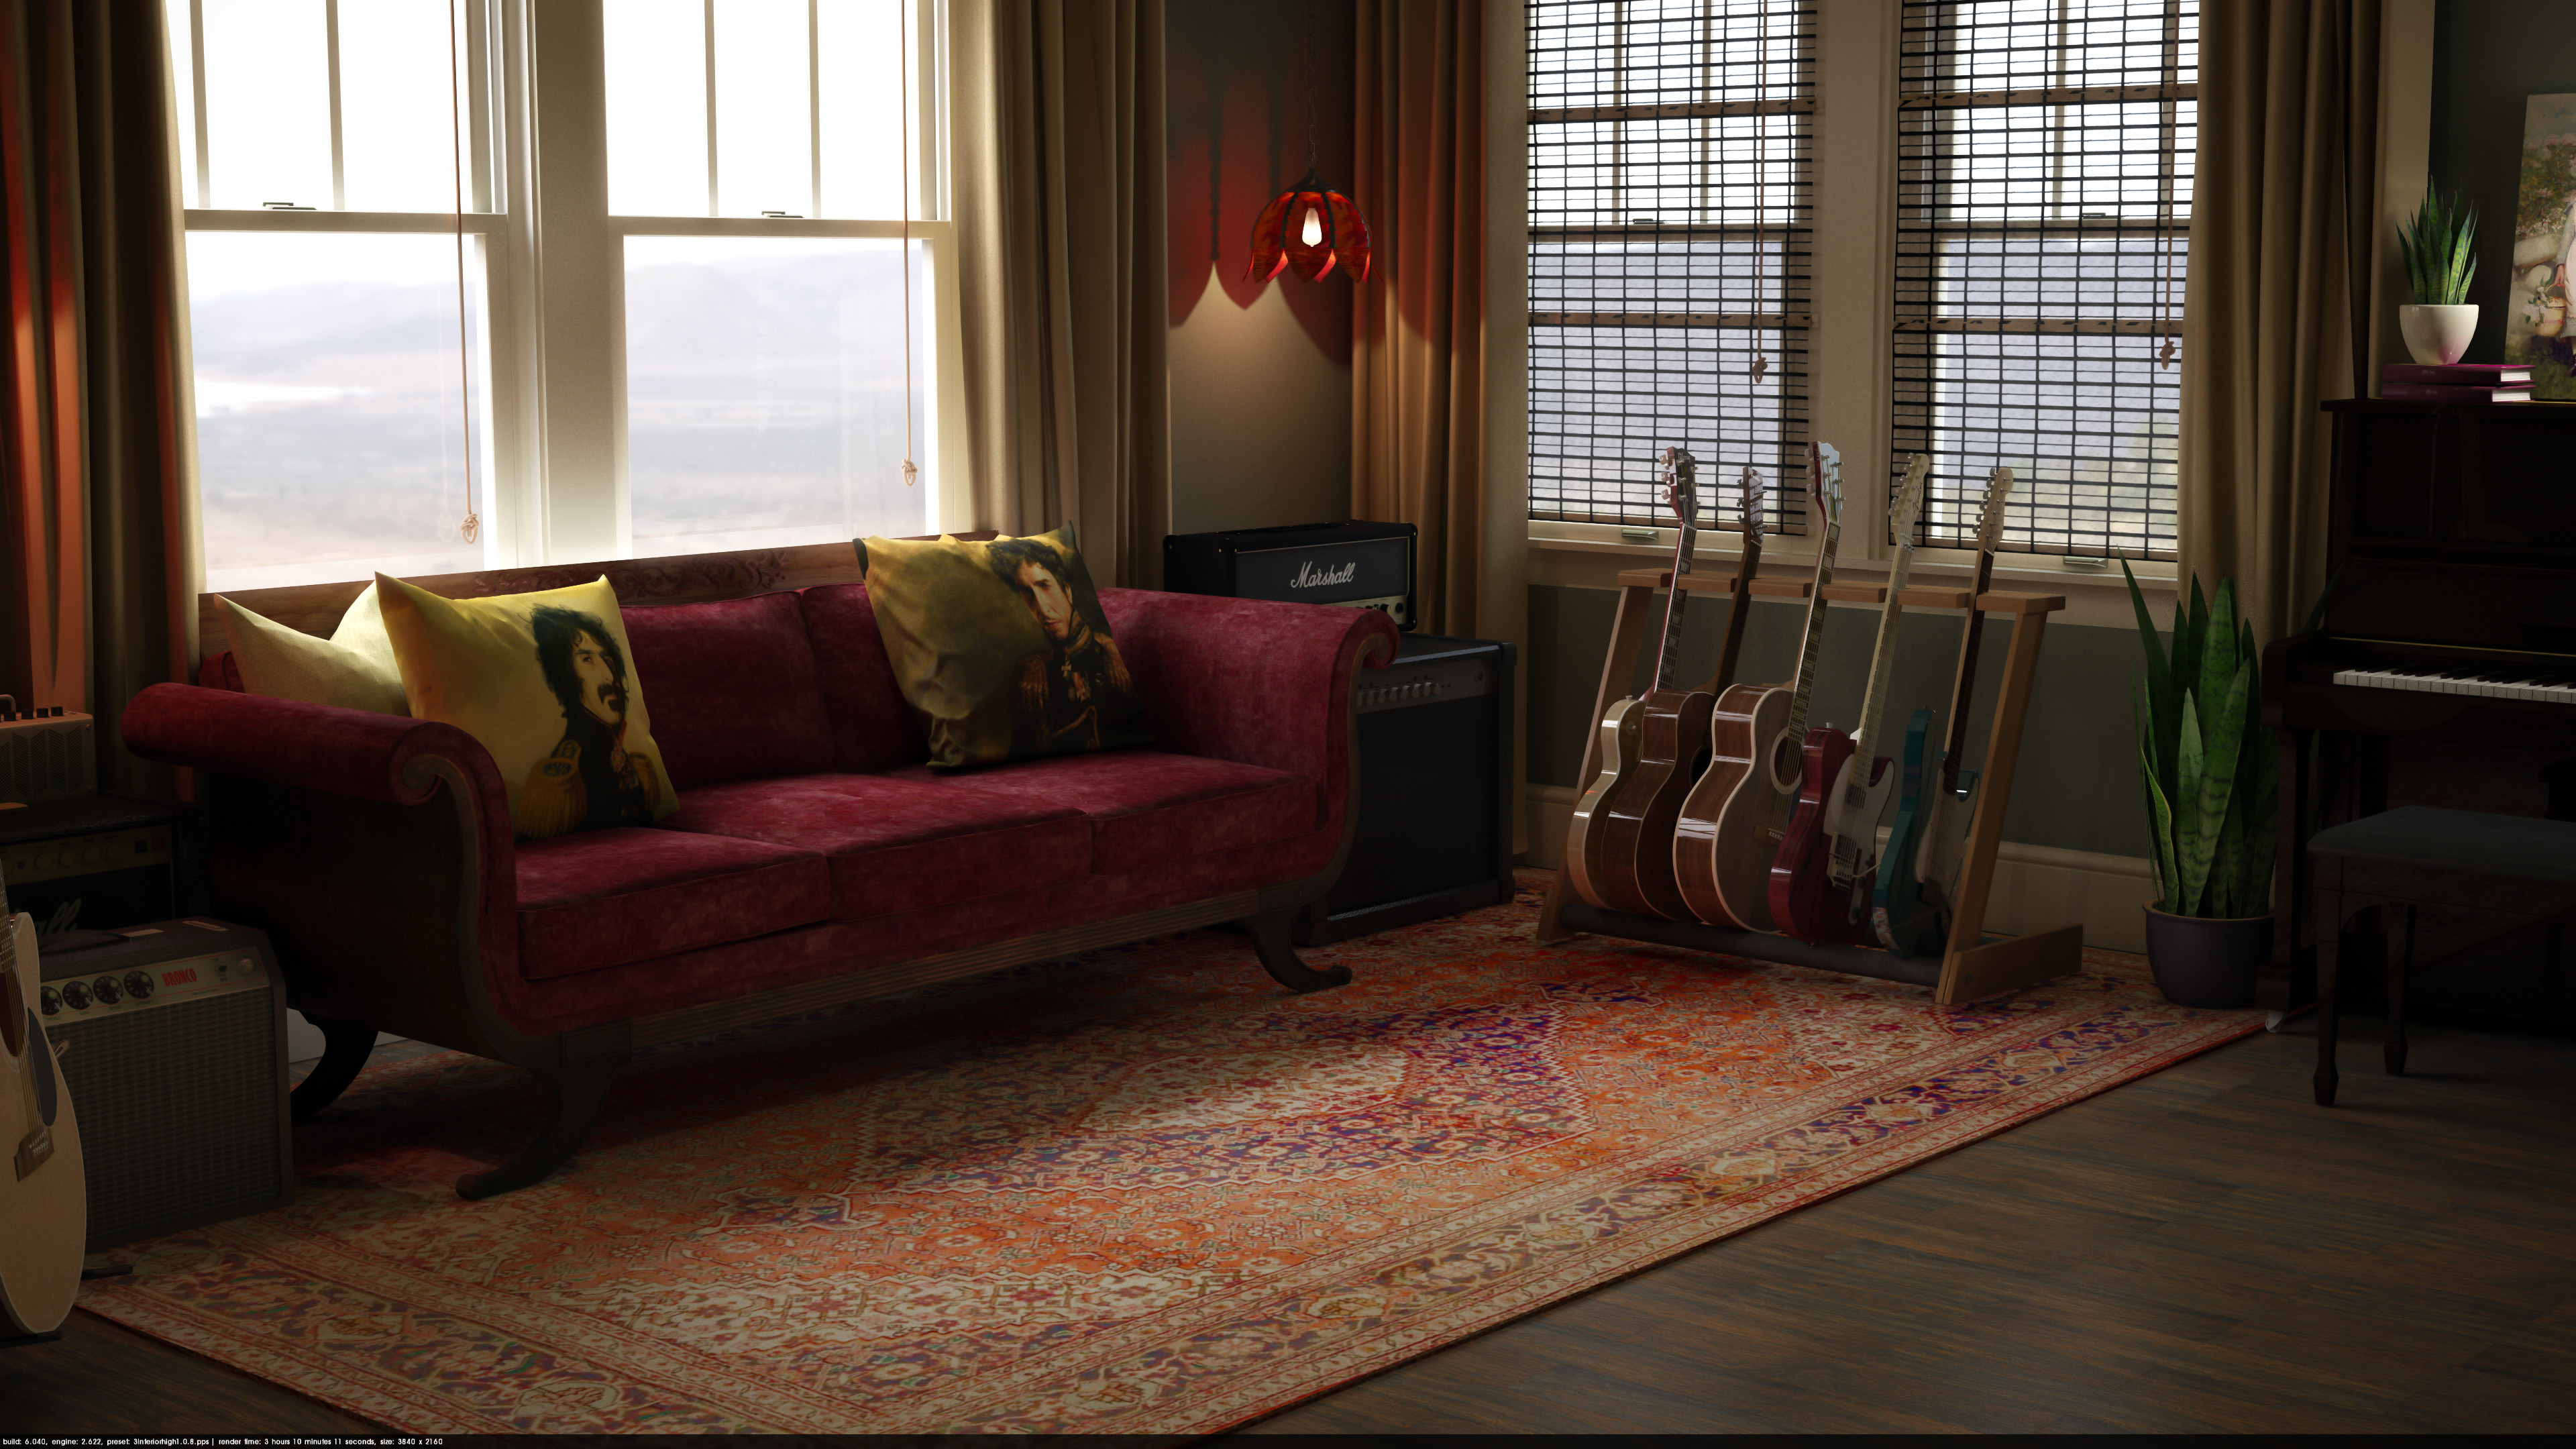 Drawovis-Musicroom1-v2.6-PP.jpg